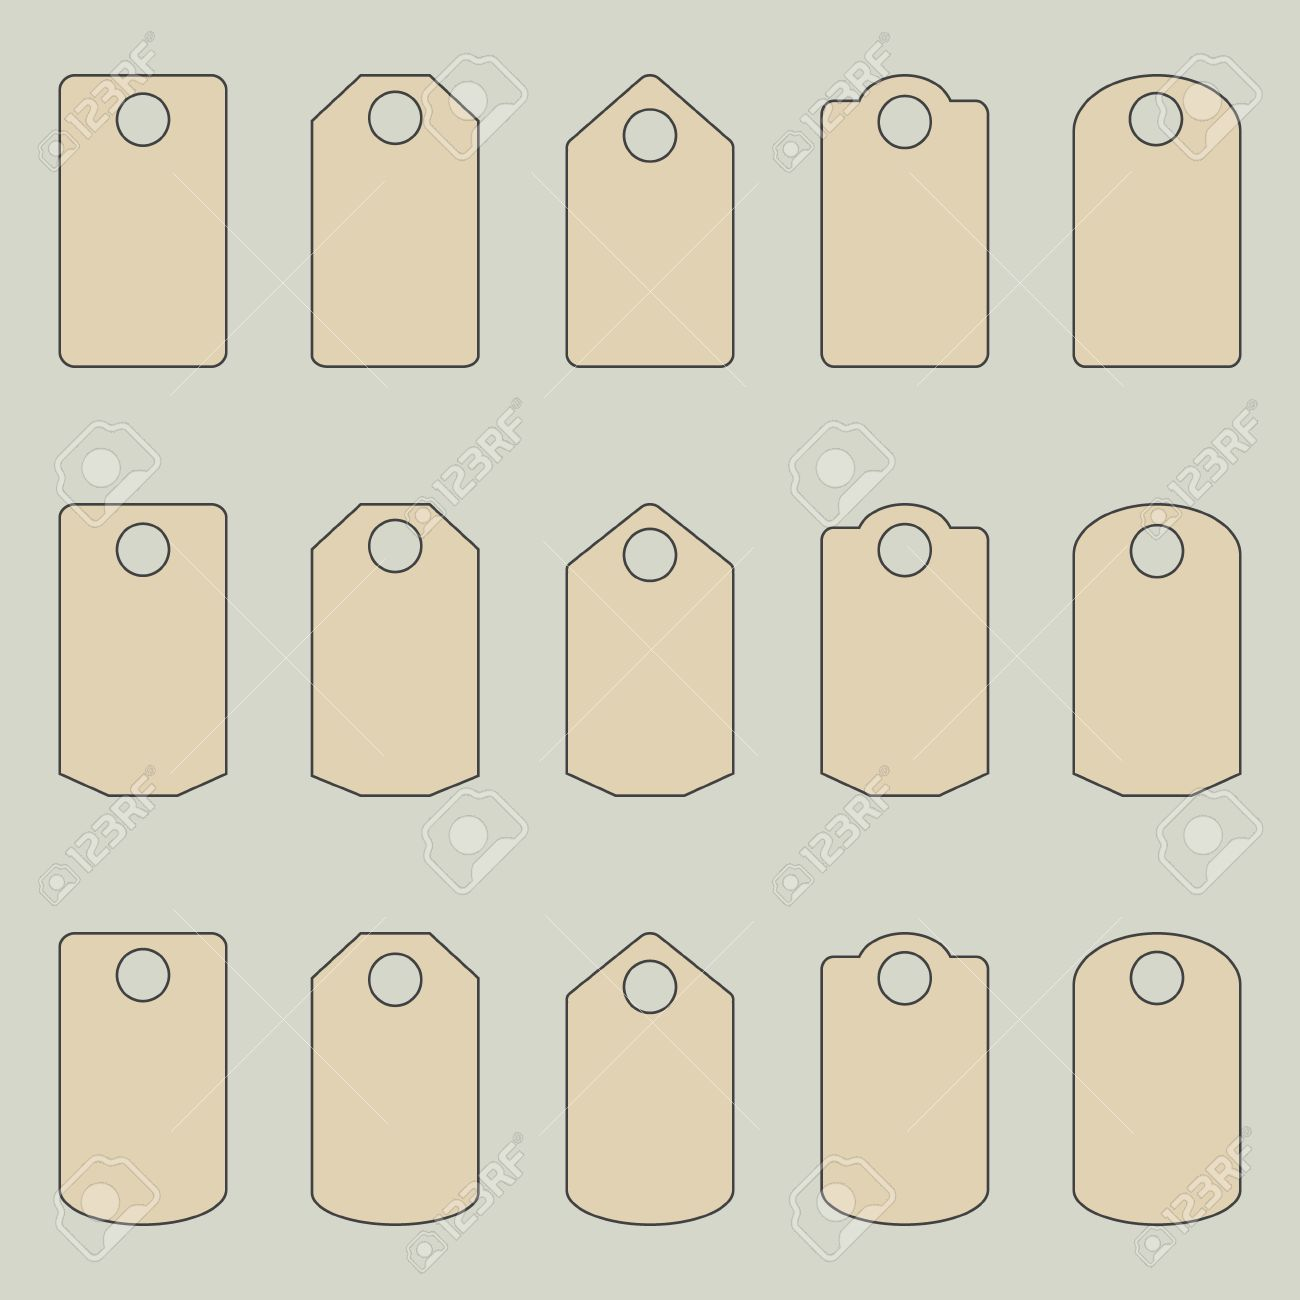 Price Tags Template